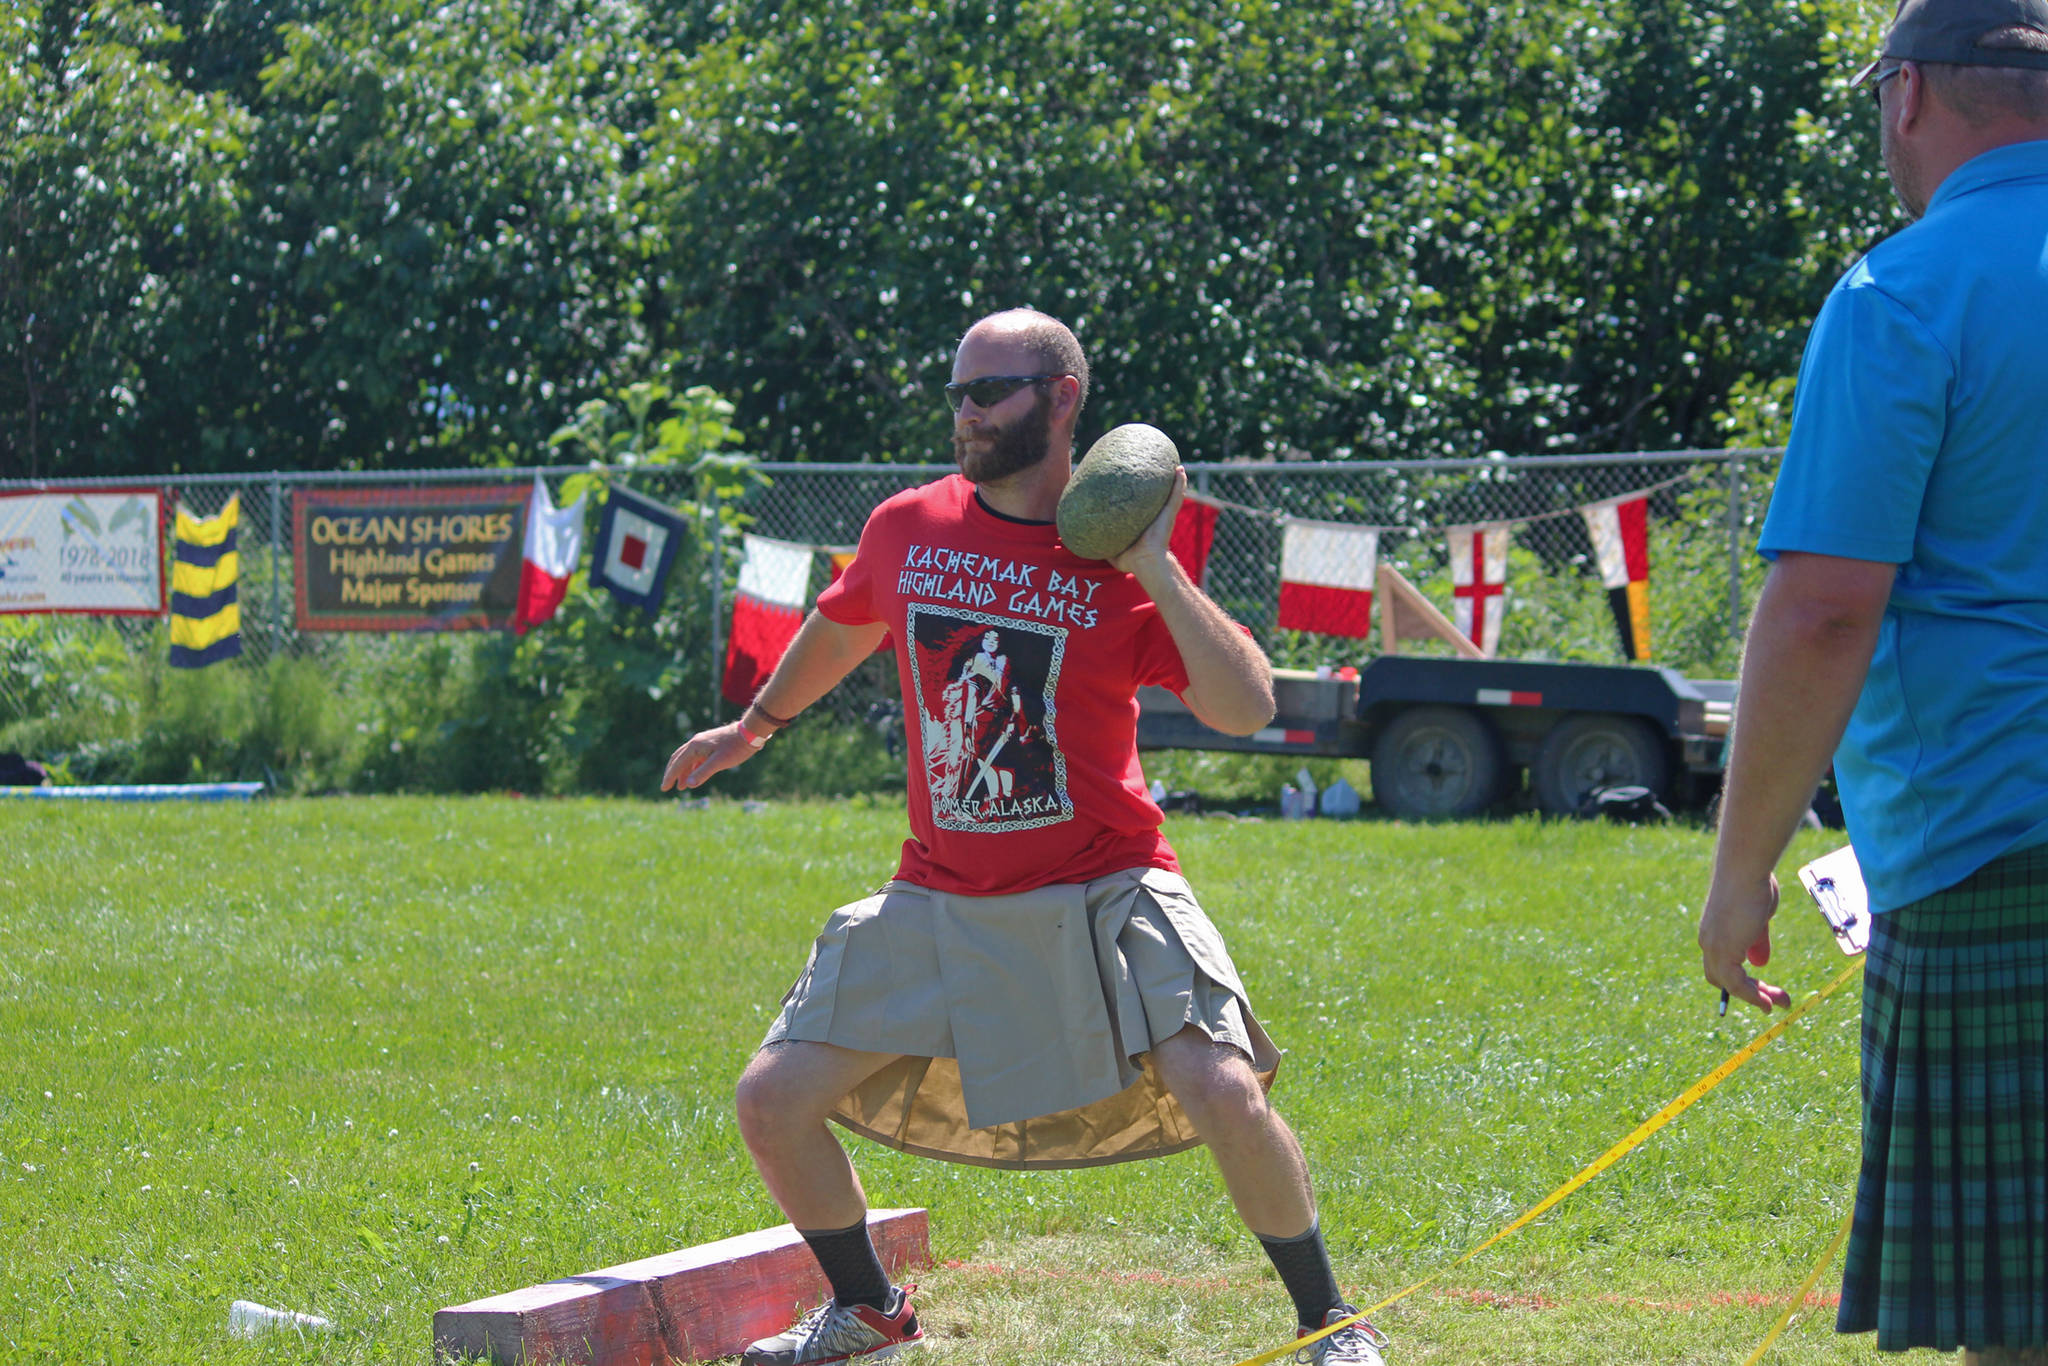 A novice competitor prepares to throw a braemar stone during the Kachemak Bay Scottish Highland Games on Saturday, July 7, 2018 at Karen Hornaday Park in Homer, Alaska. (Homer News file photo)